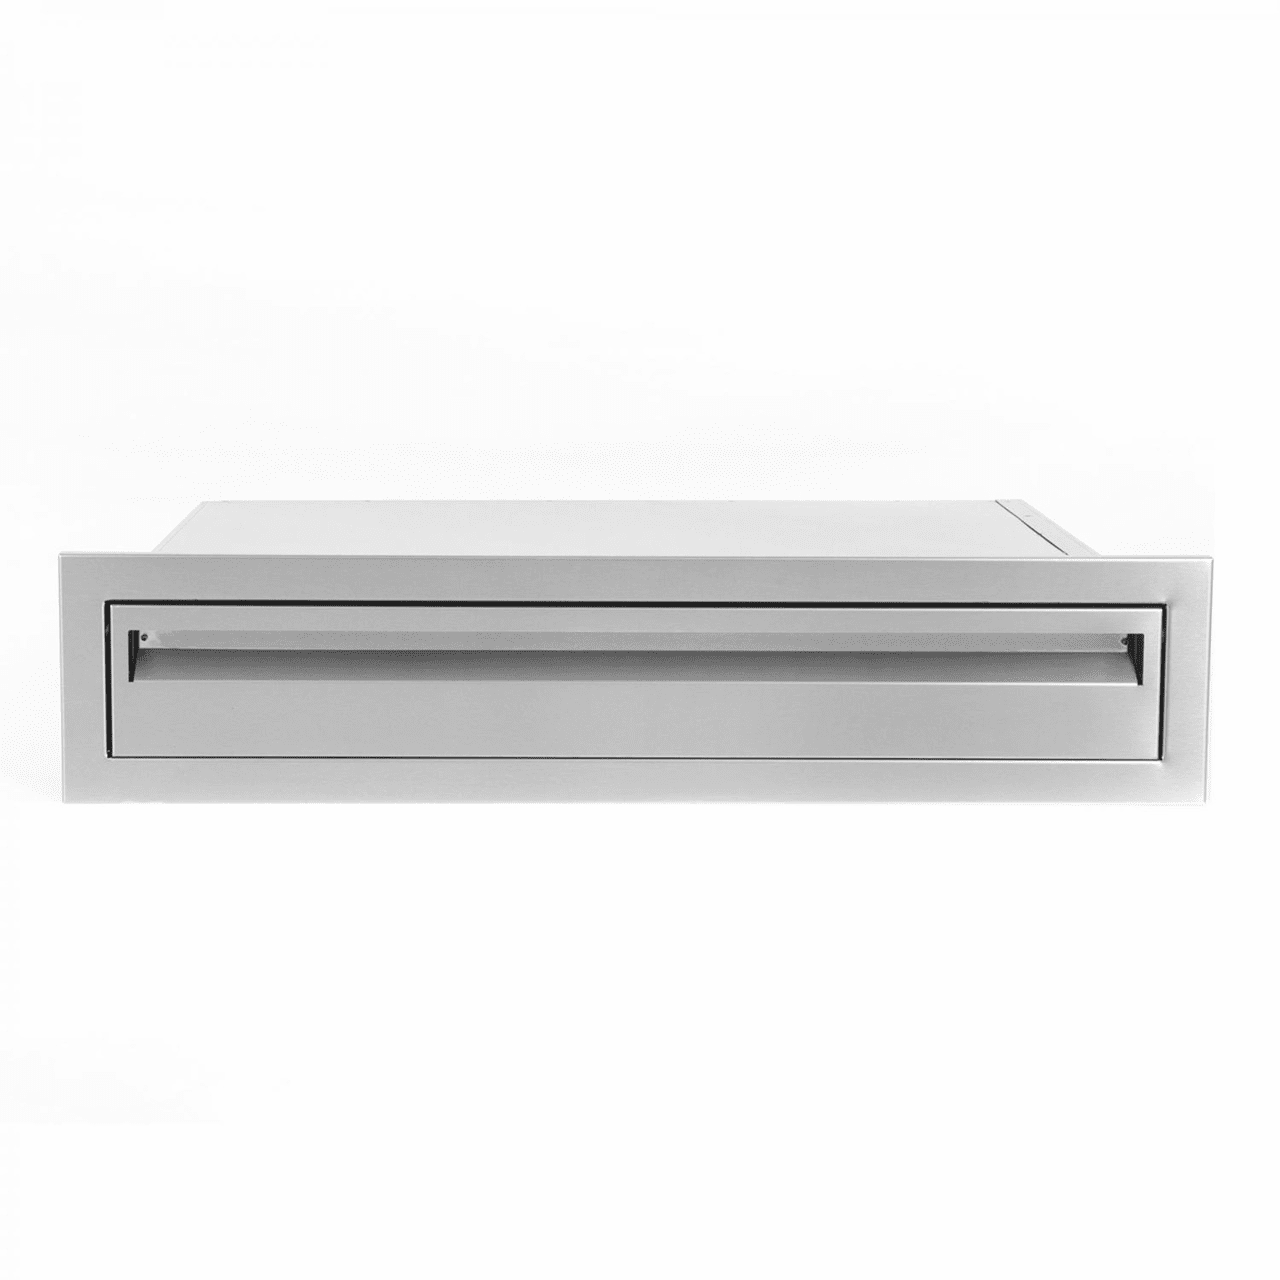 PCM 301 Series 30 X 4 1 Drawer Stainless Steel